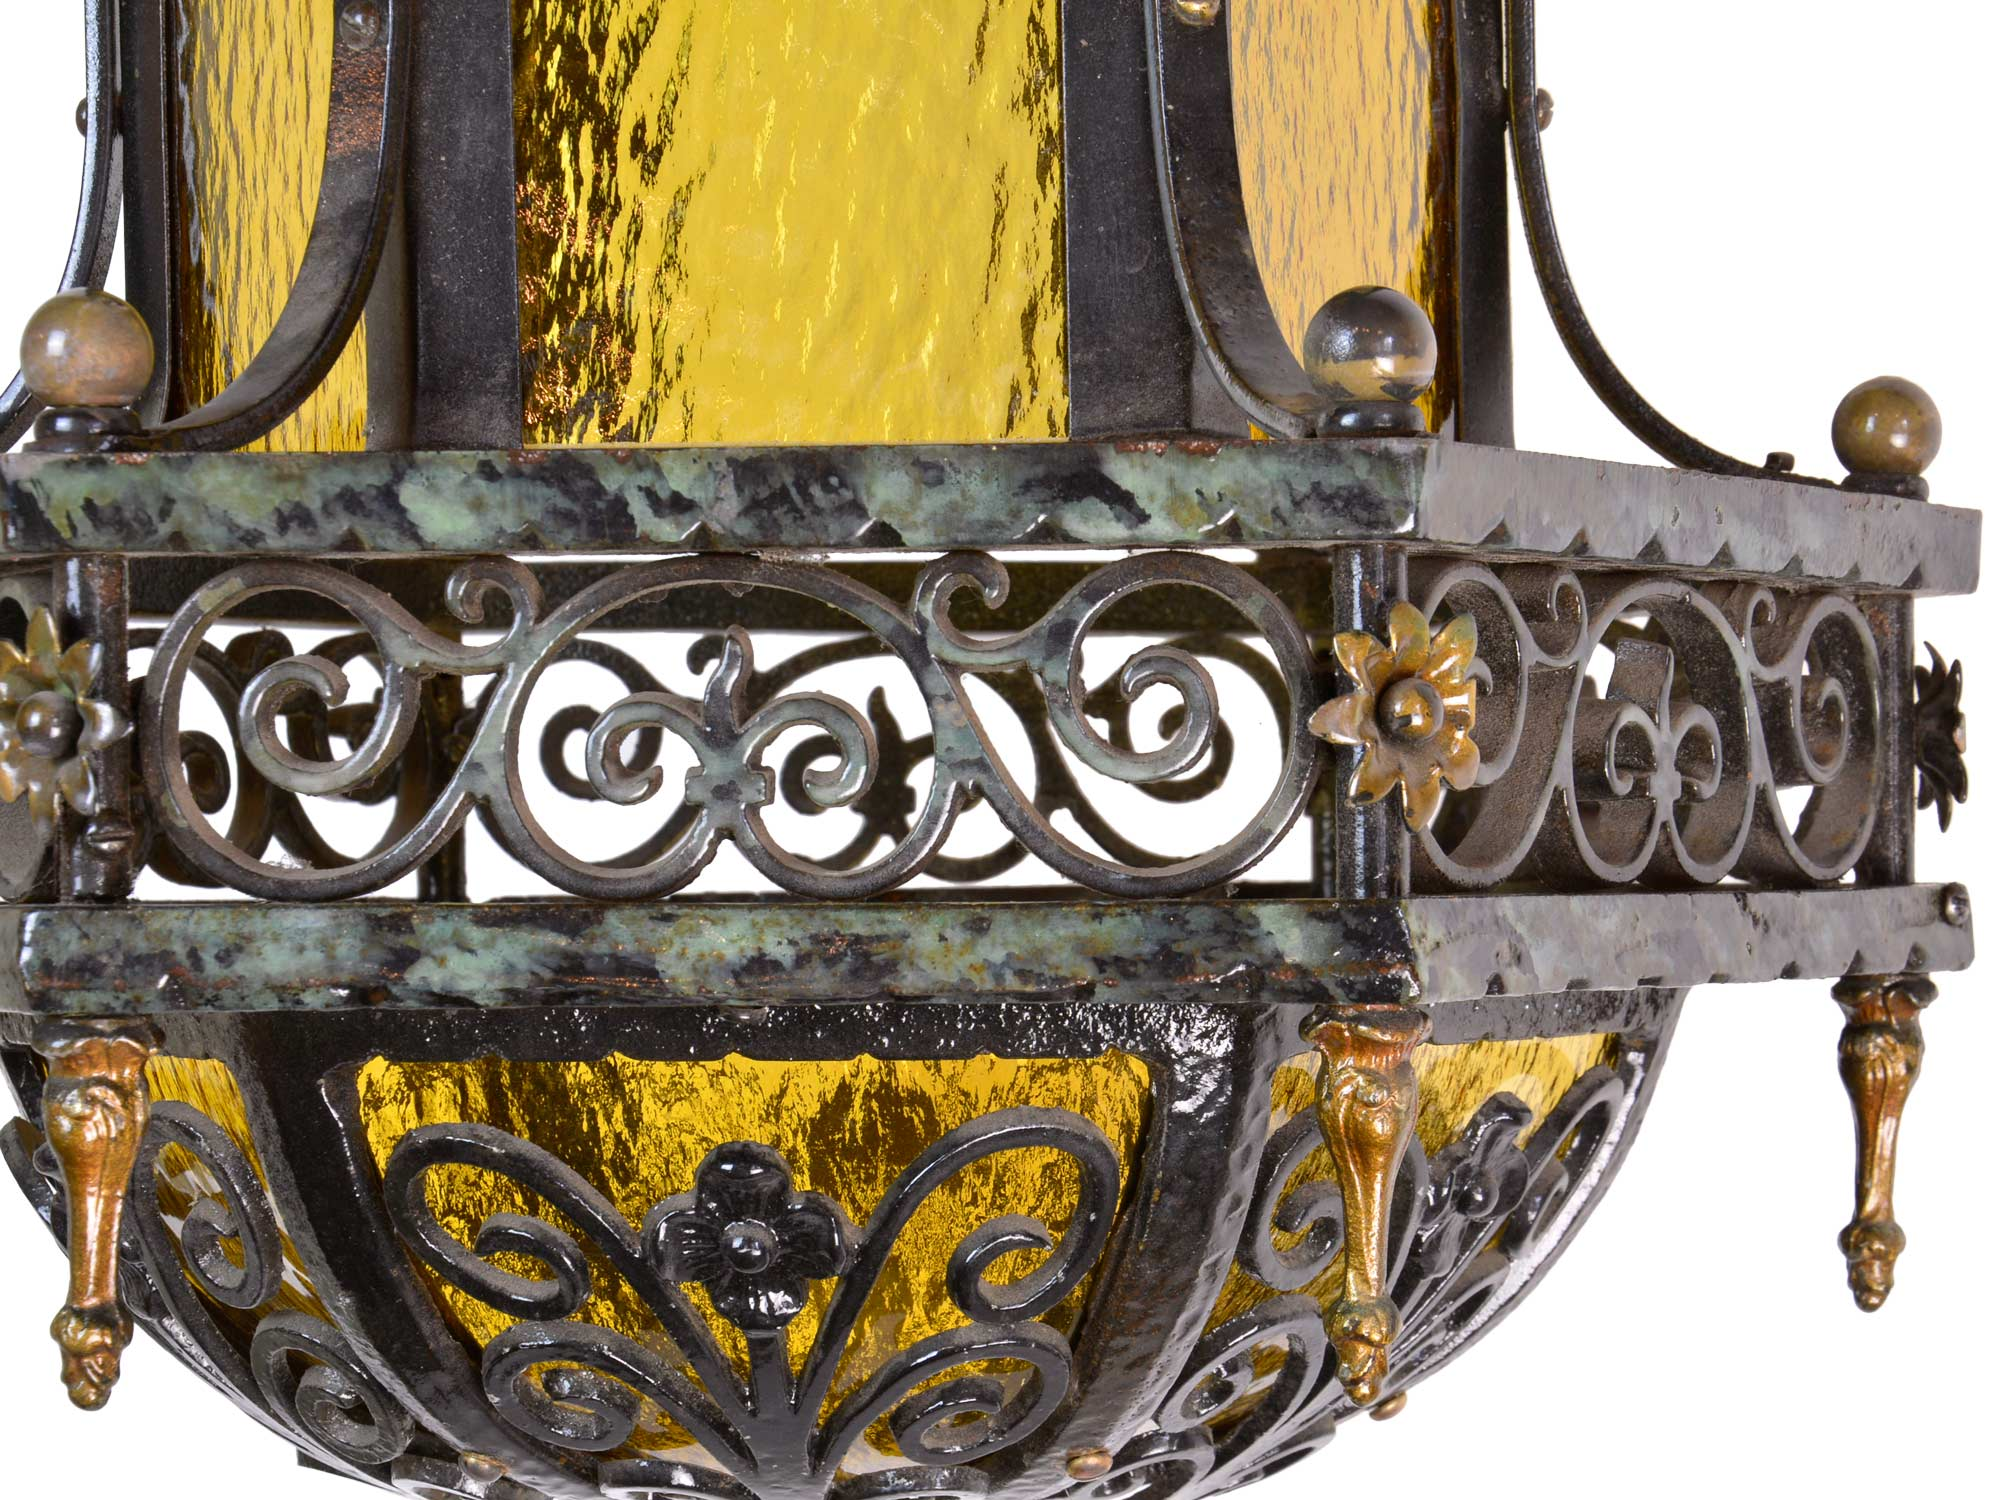 45961-bent-amber-glass-and-iron-chandelier-with-floral-details-scrolls.jpg